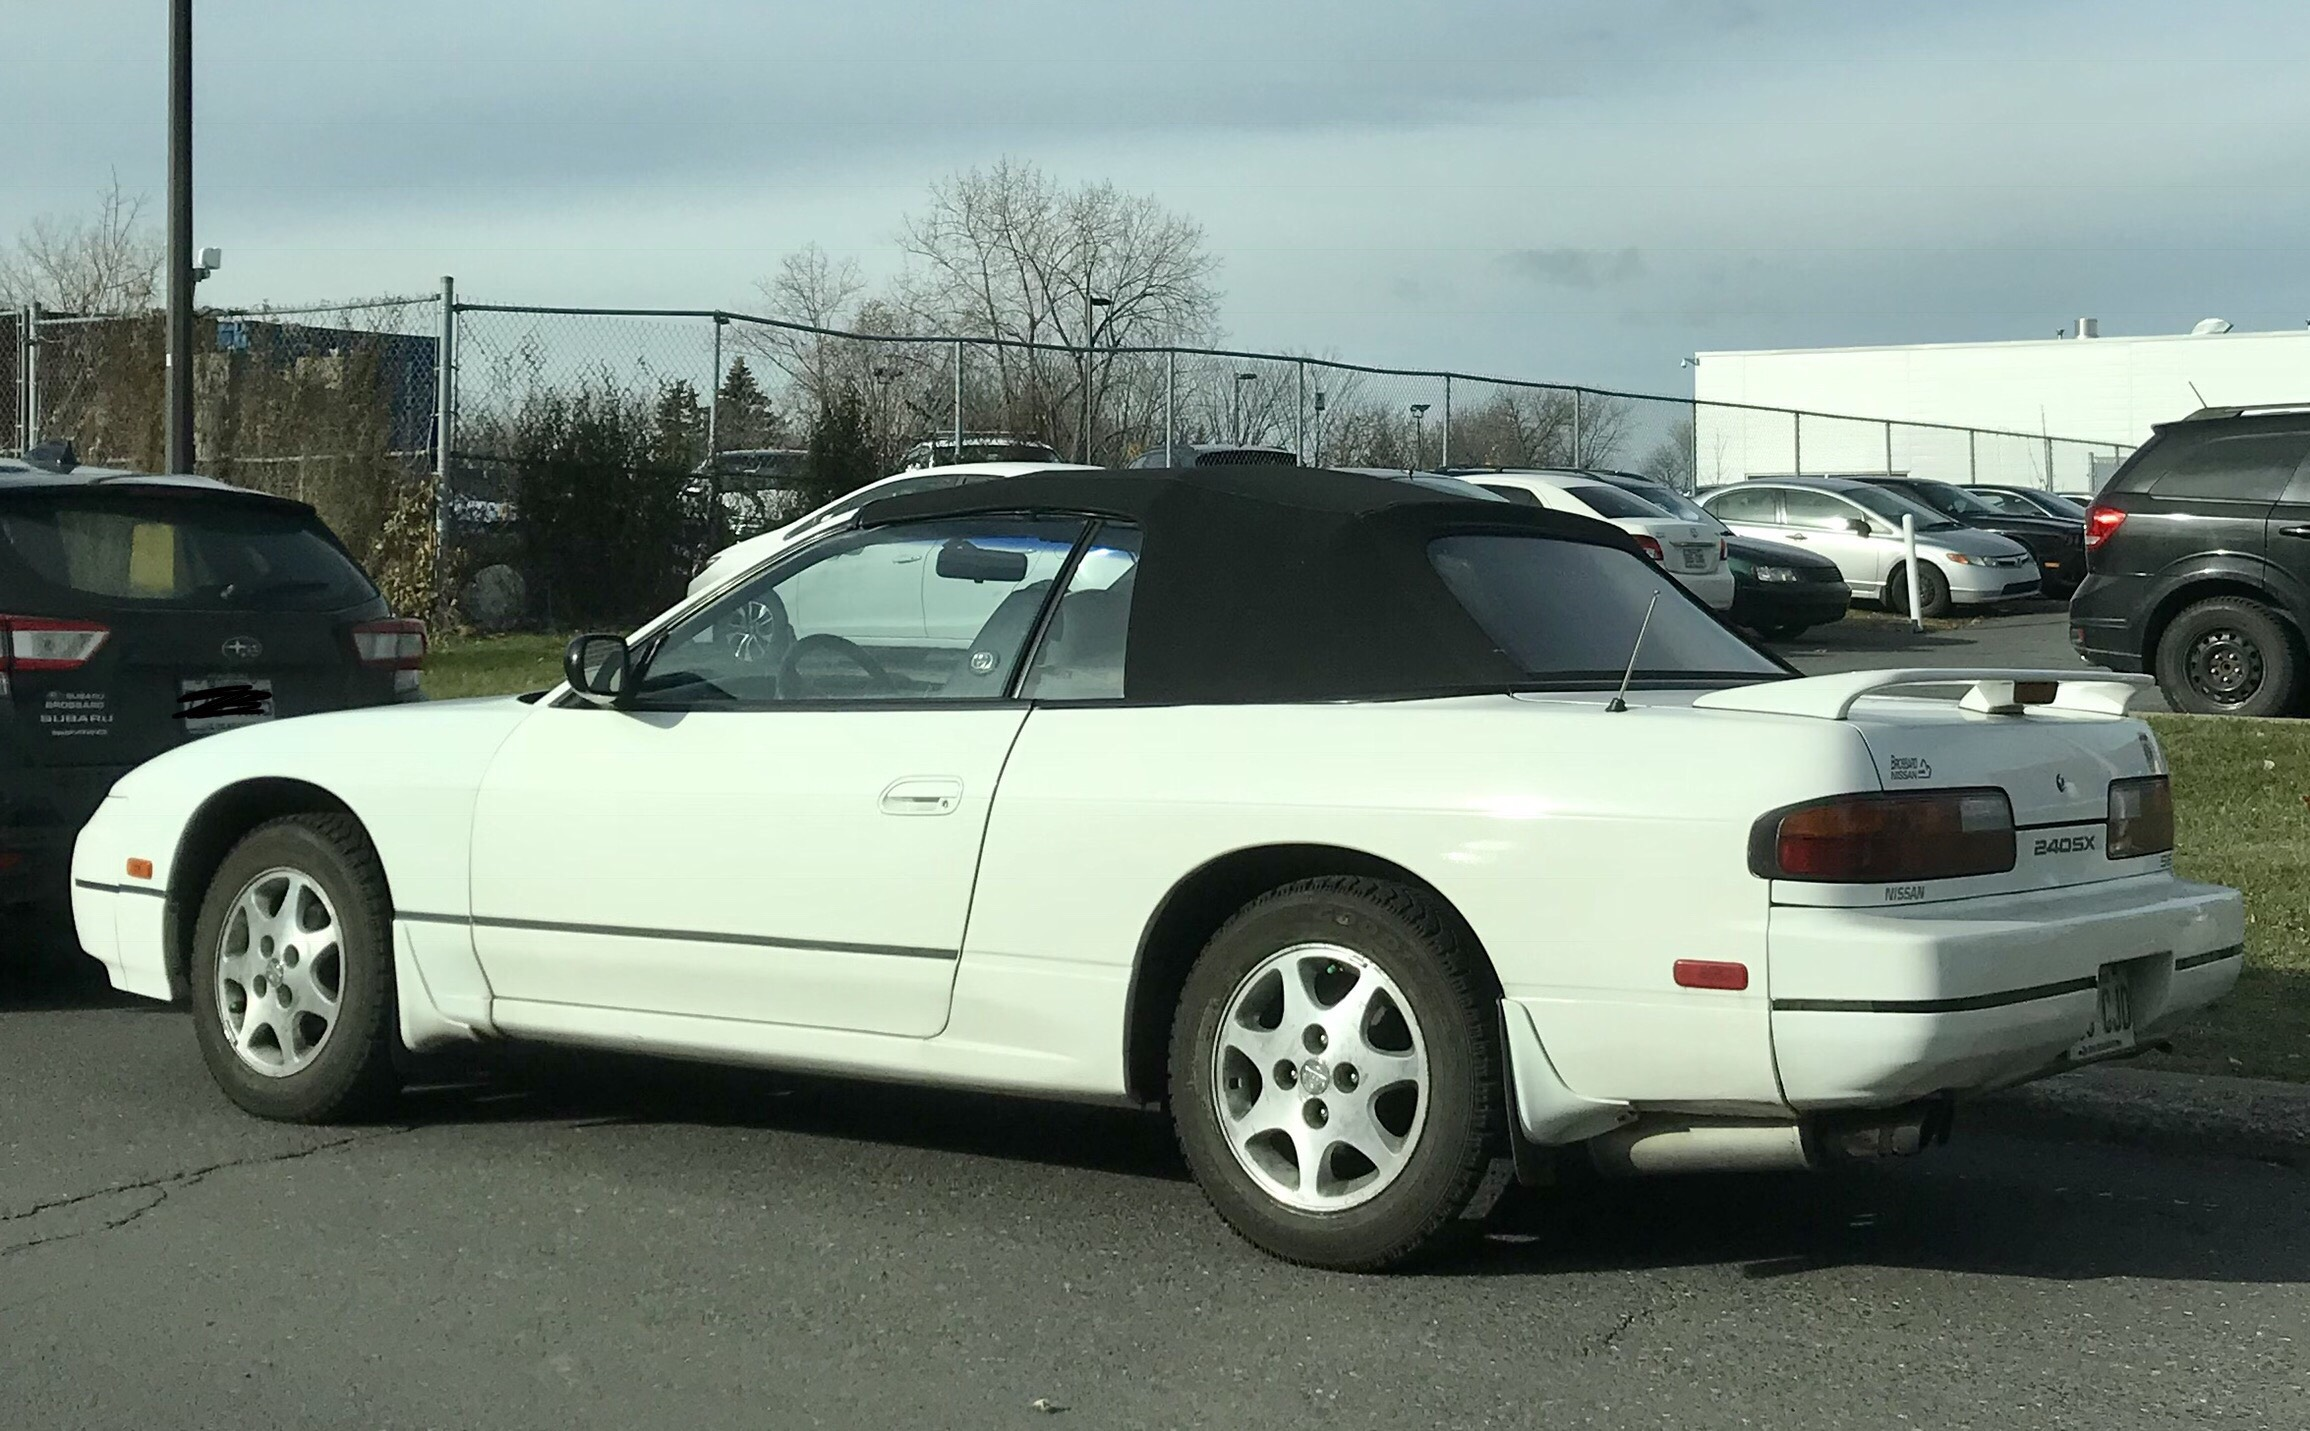 1e02baf64f2041 Now here s something you don t see everyday... A 240sx convertible!